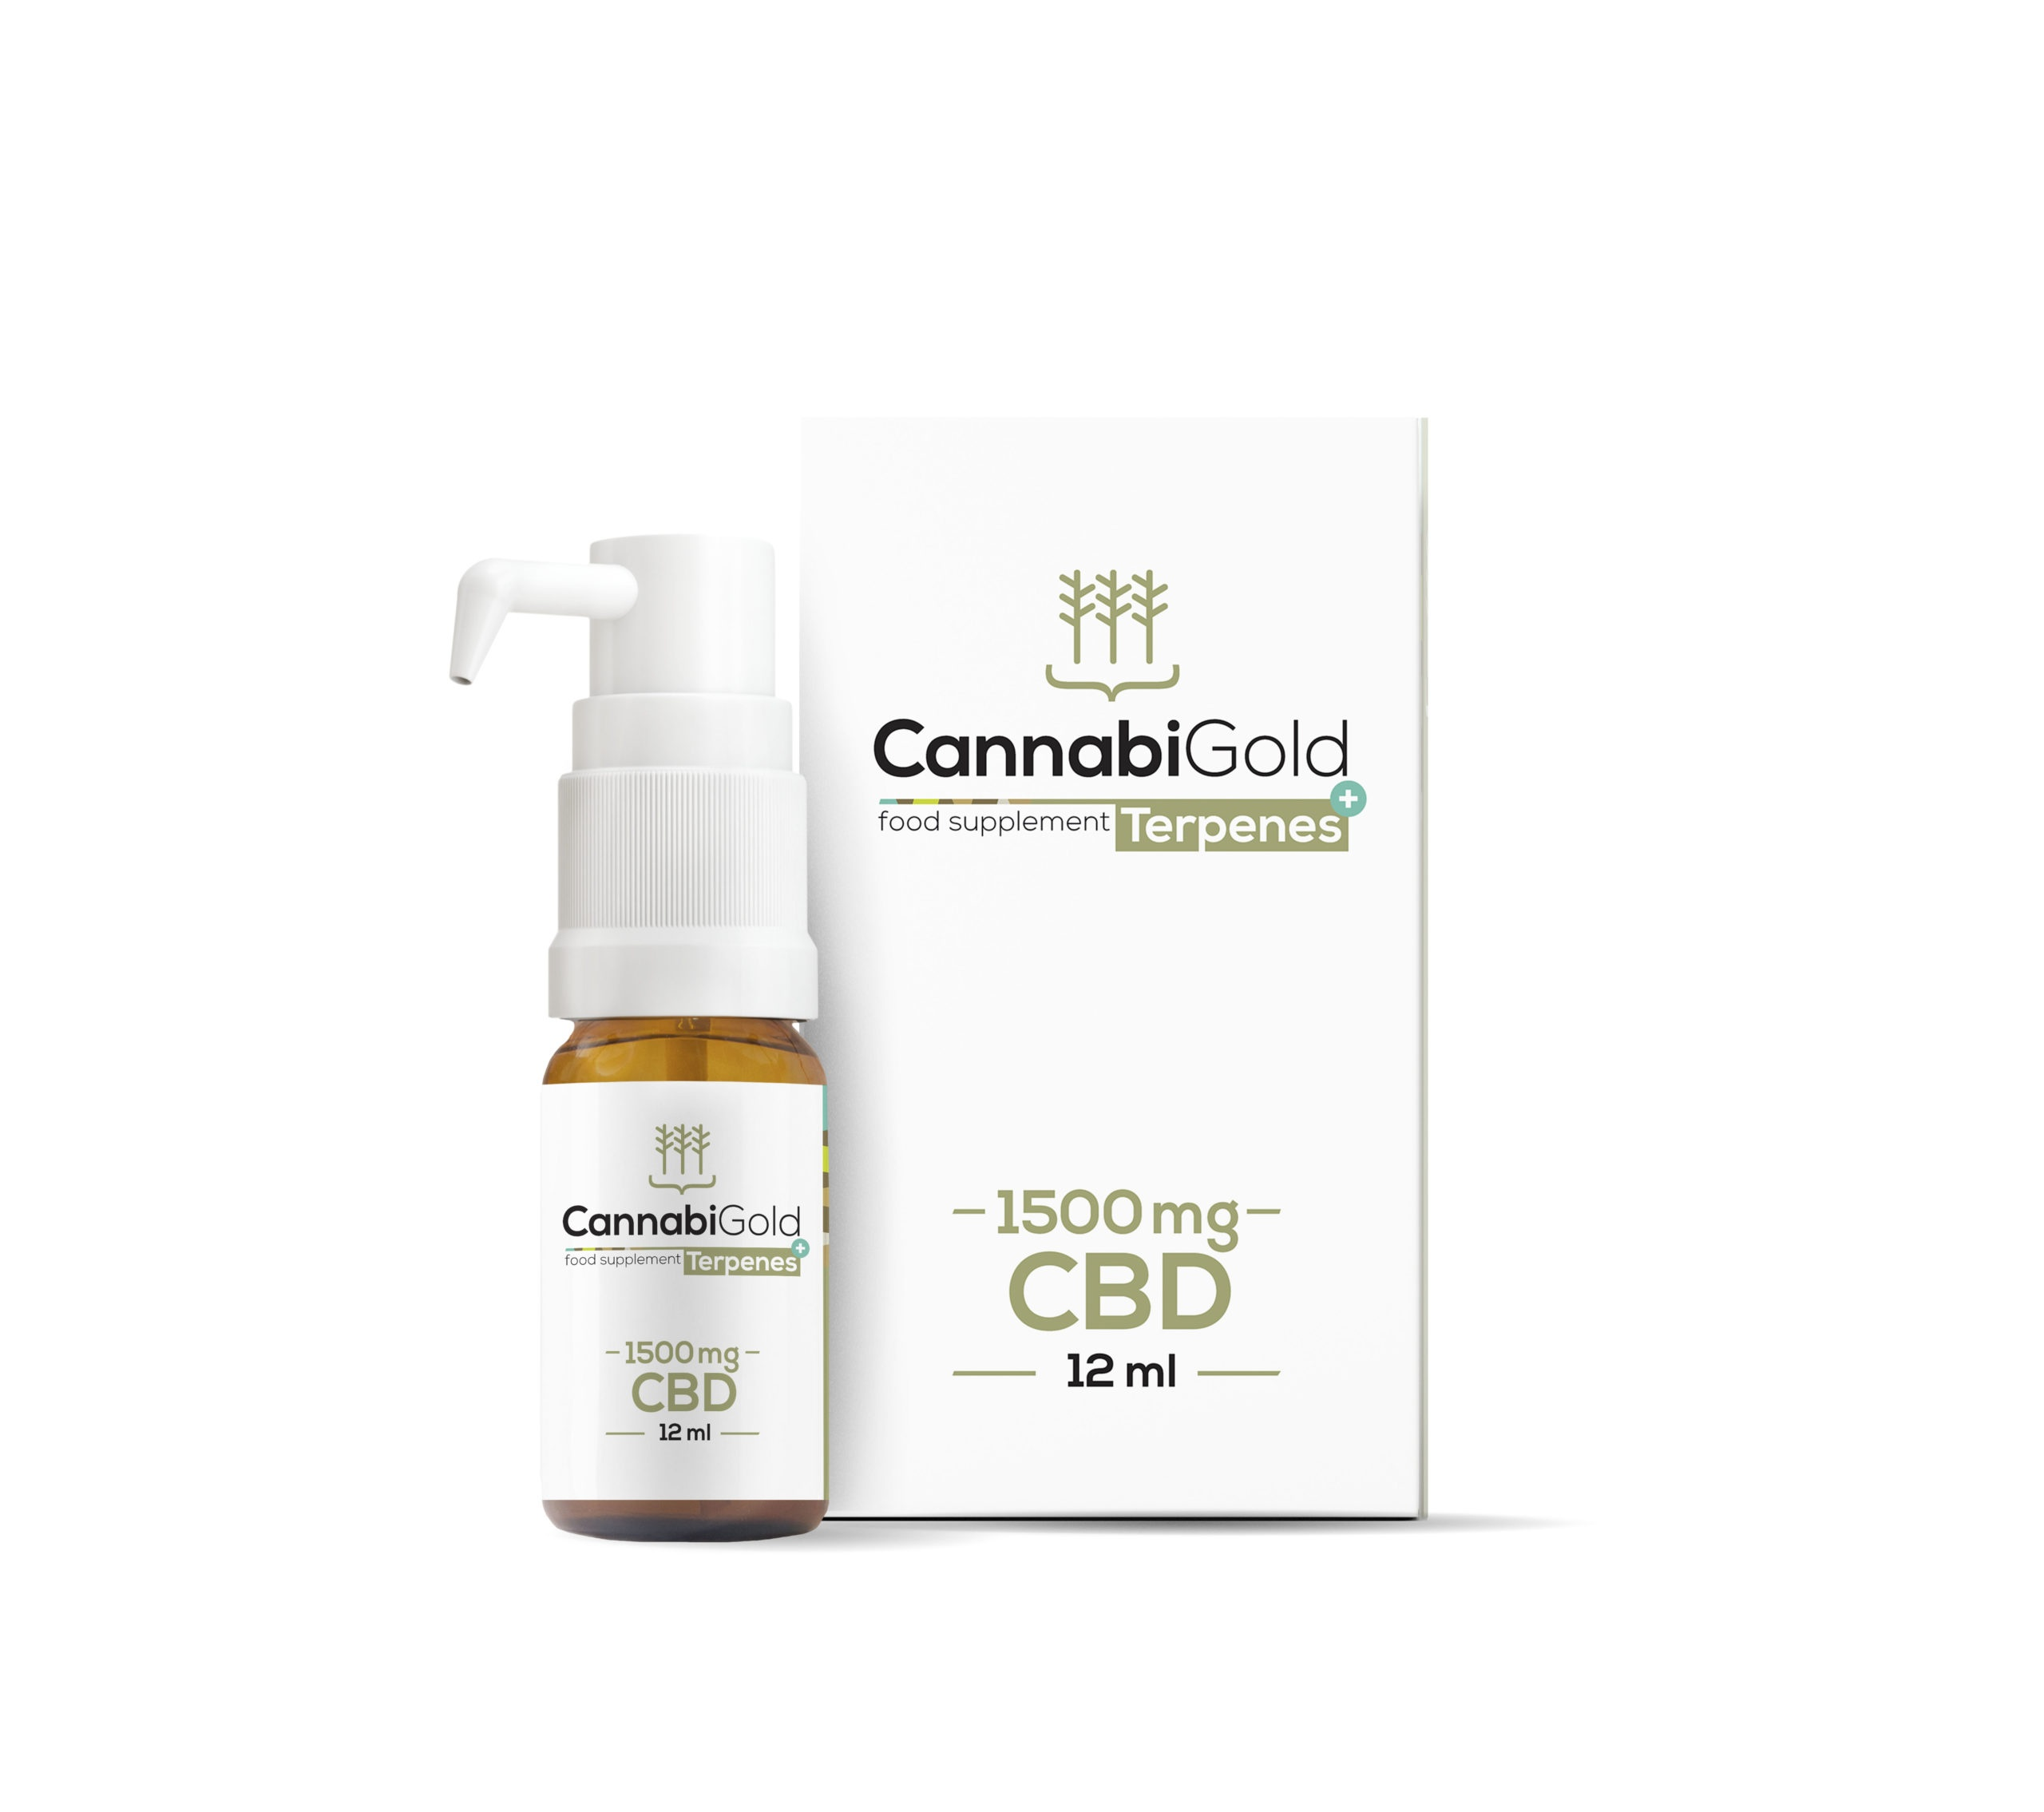 CannabiGold Terpenes+ 1500 mg CBD